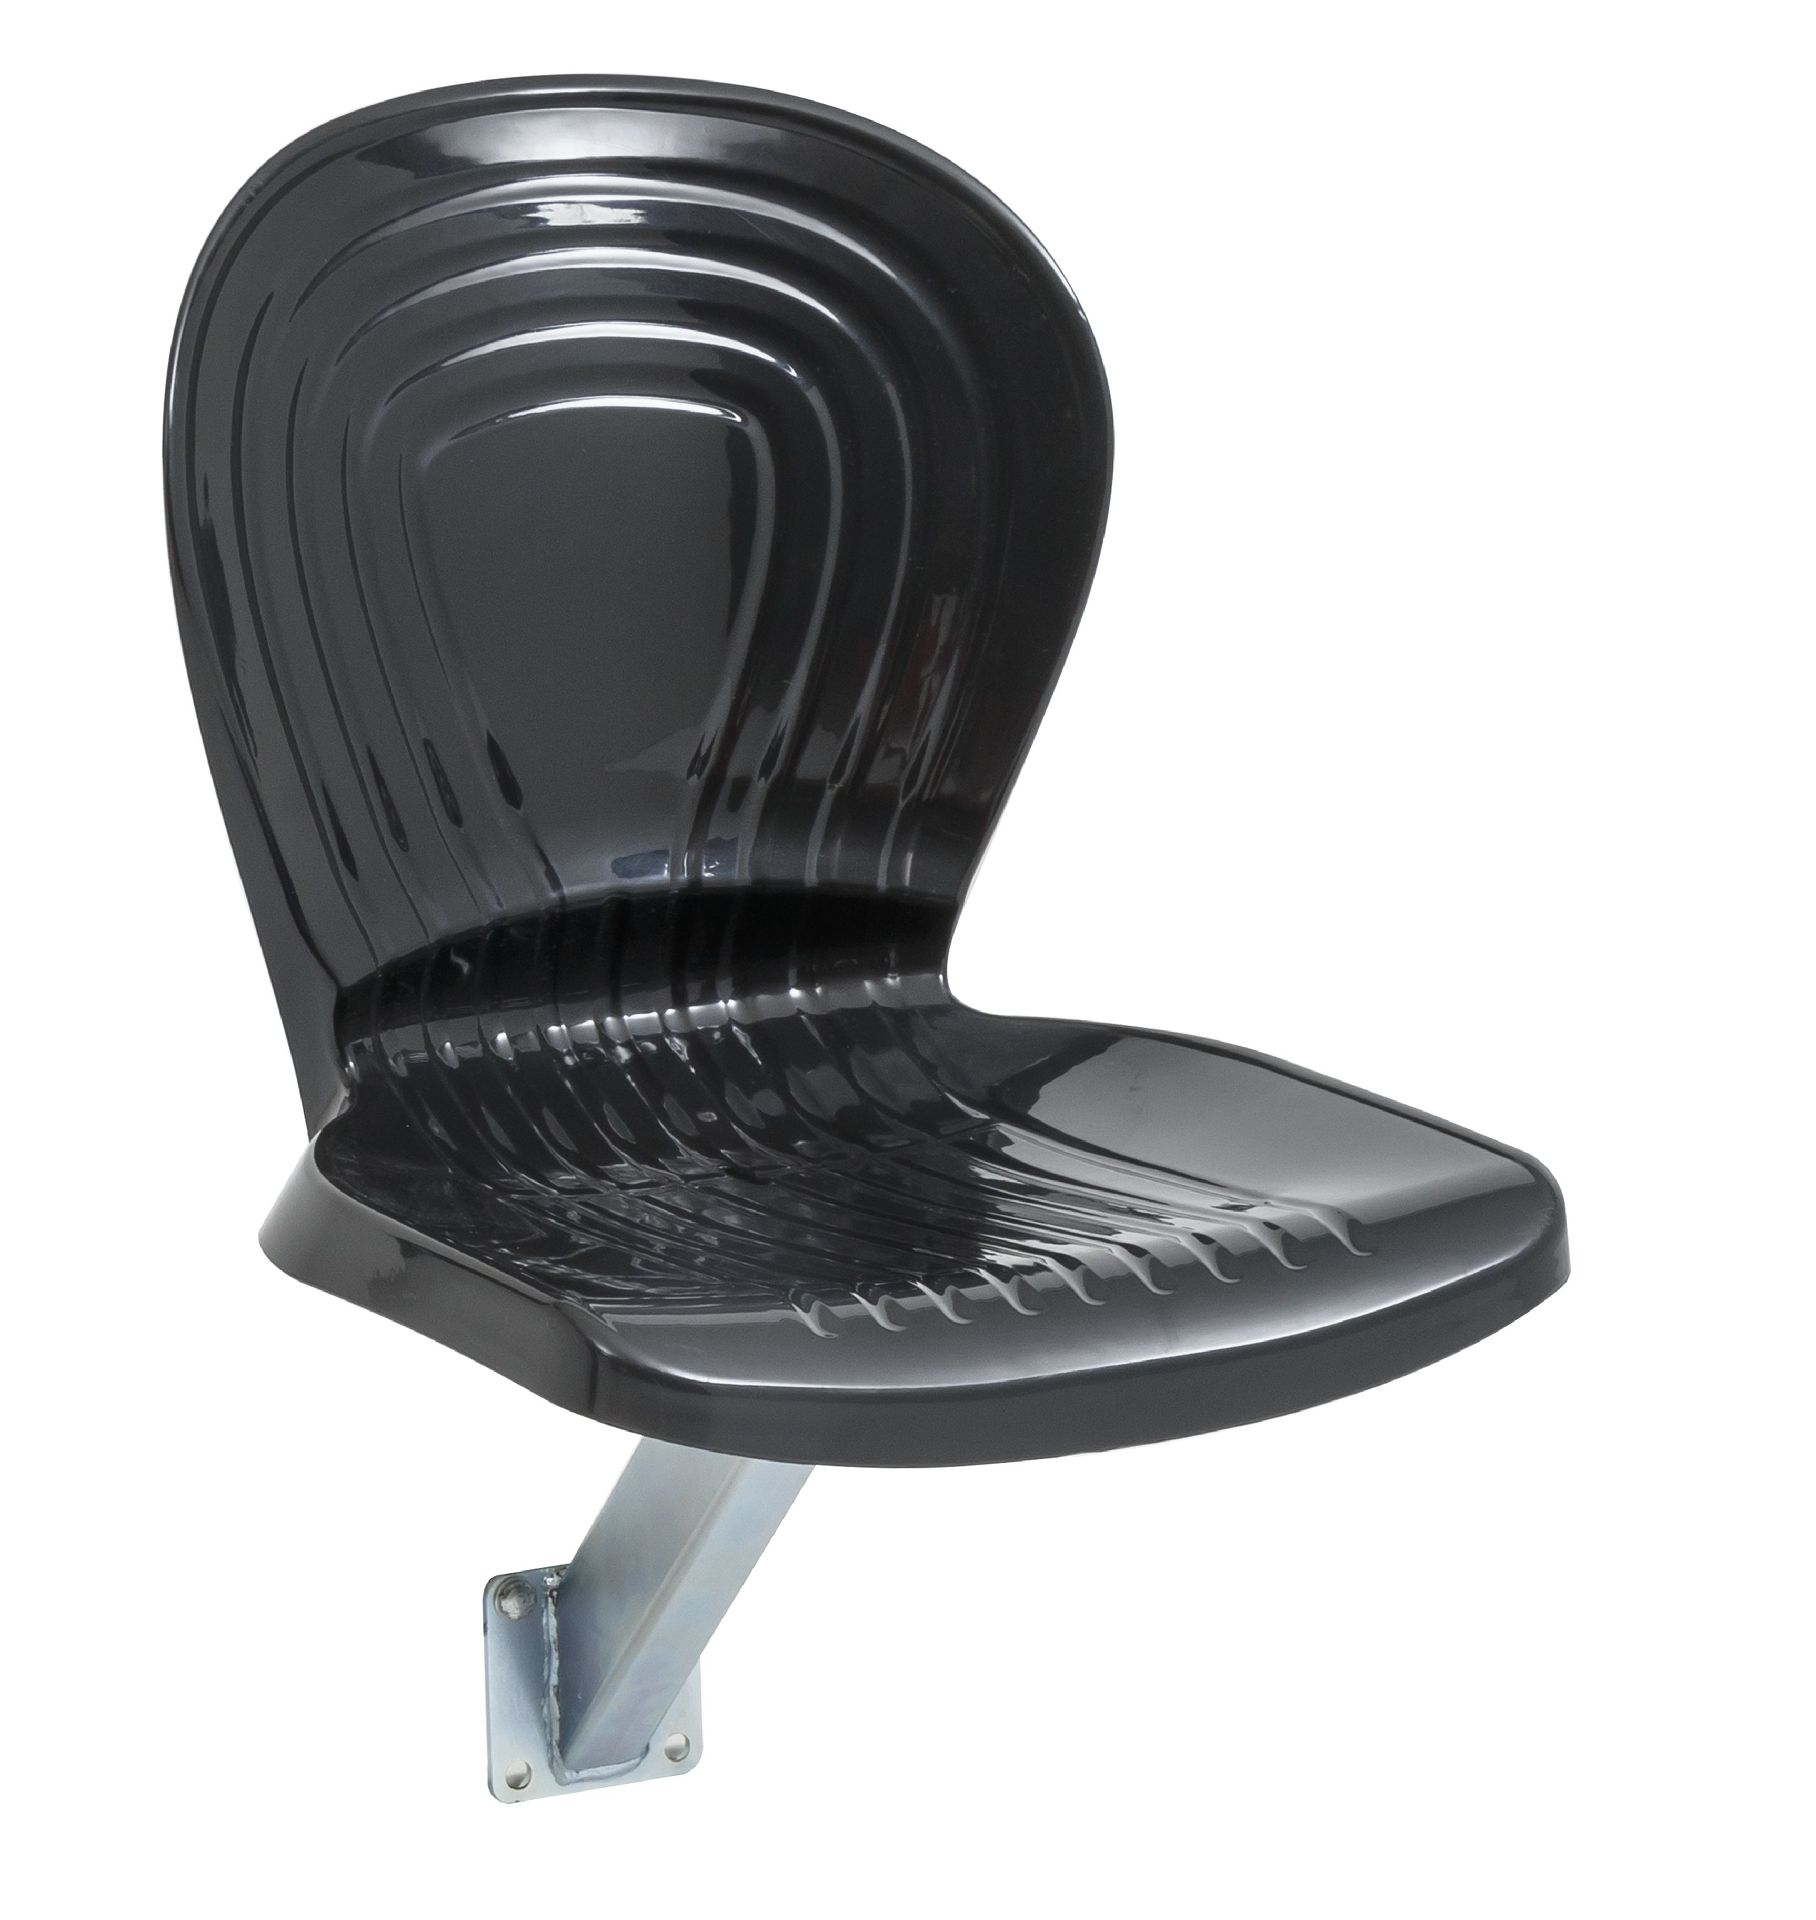 mine_backrest_monoblock_copolymer_pp_stadium_chair_seatorium_23